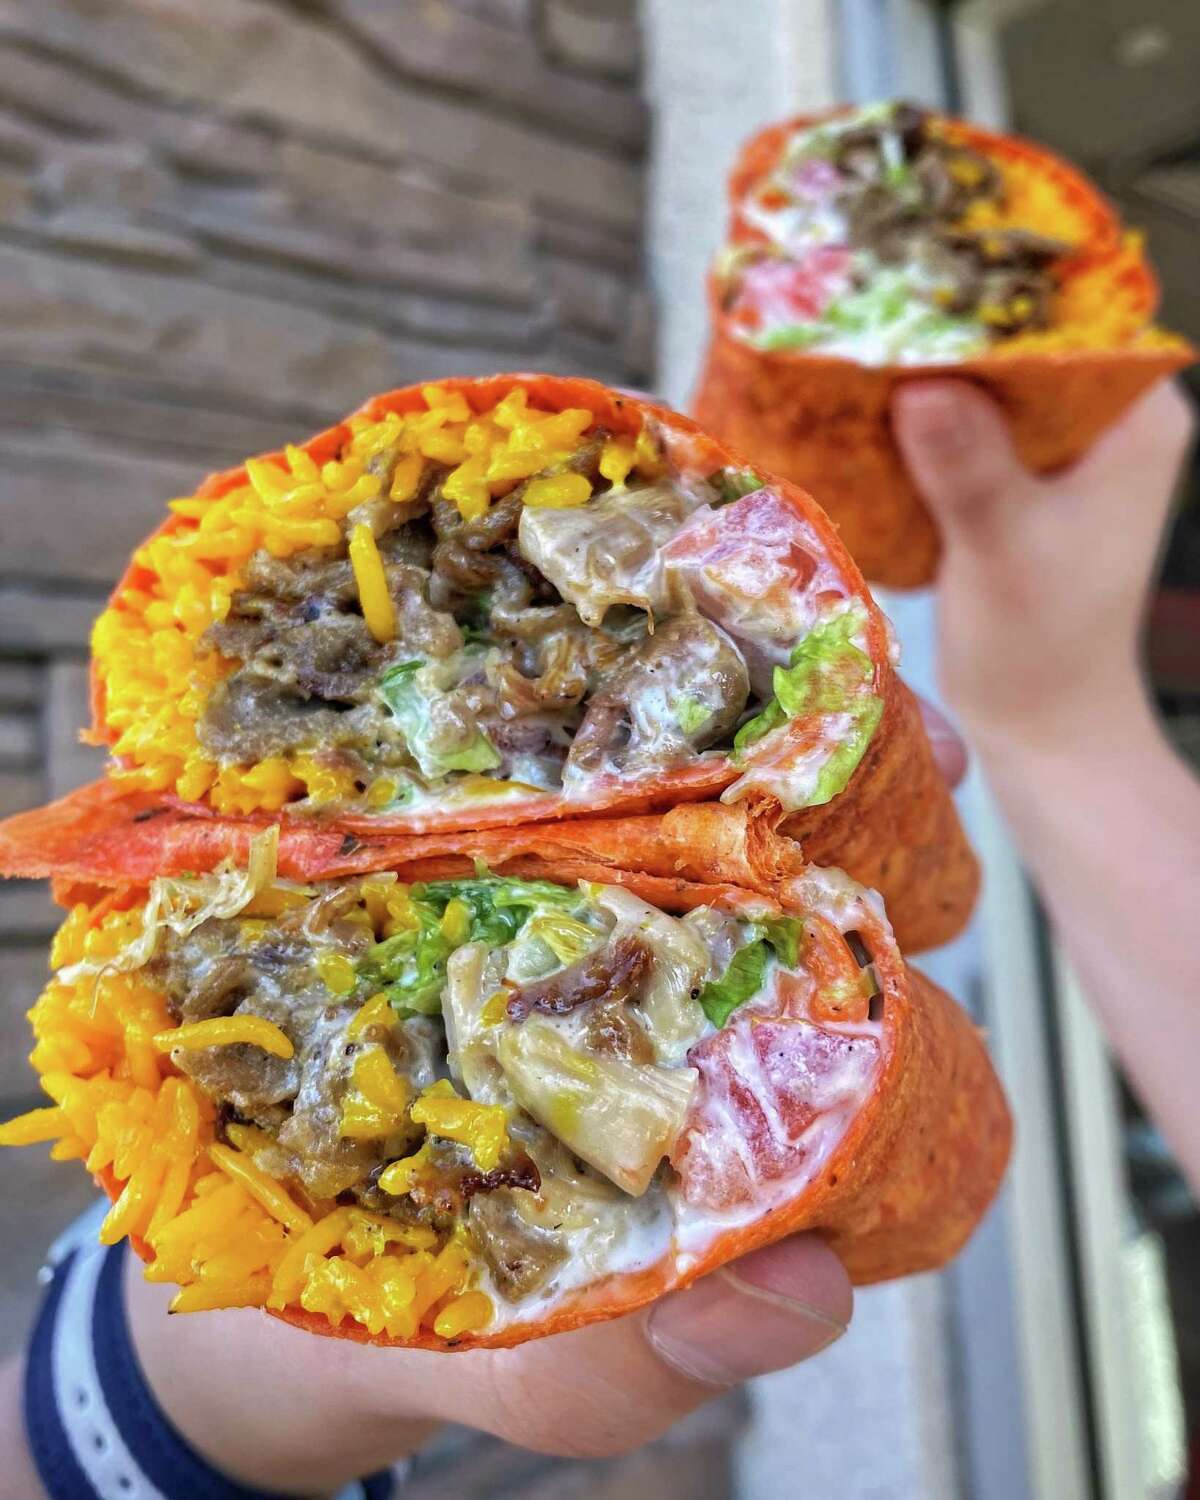 The Halal Guys is offering a new burrito stuffed with a variety of fillings, a cheese white sauce and built with a sundried tomato tortilla.